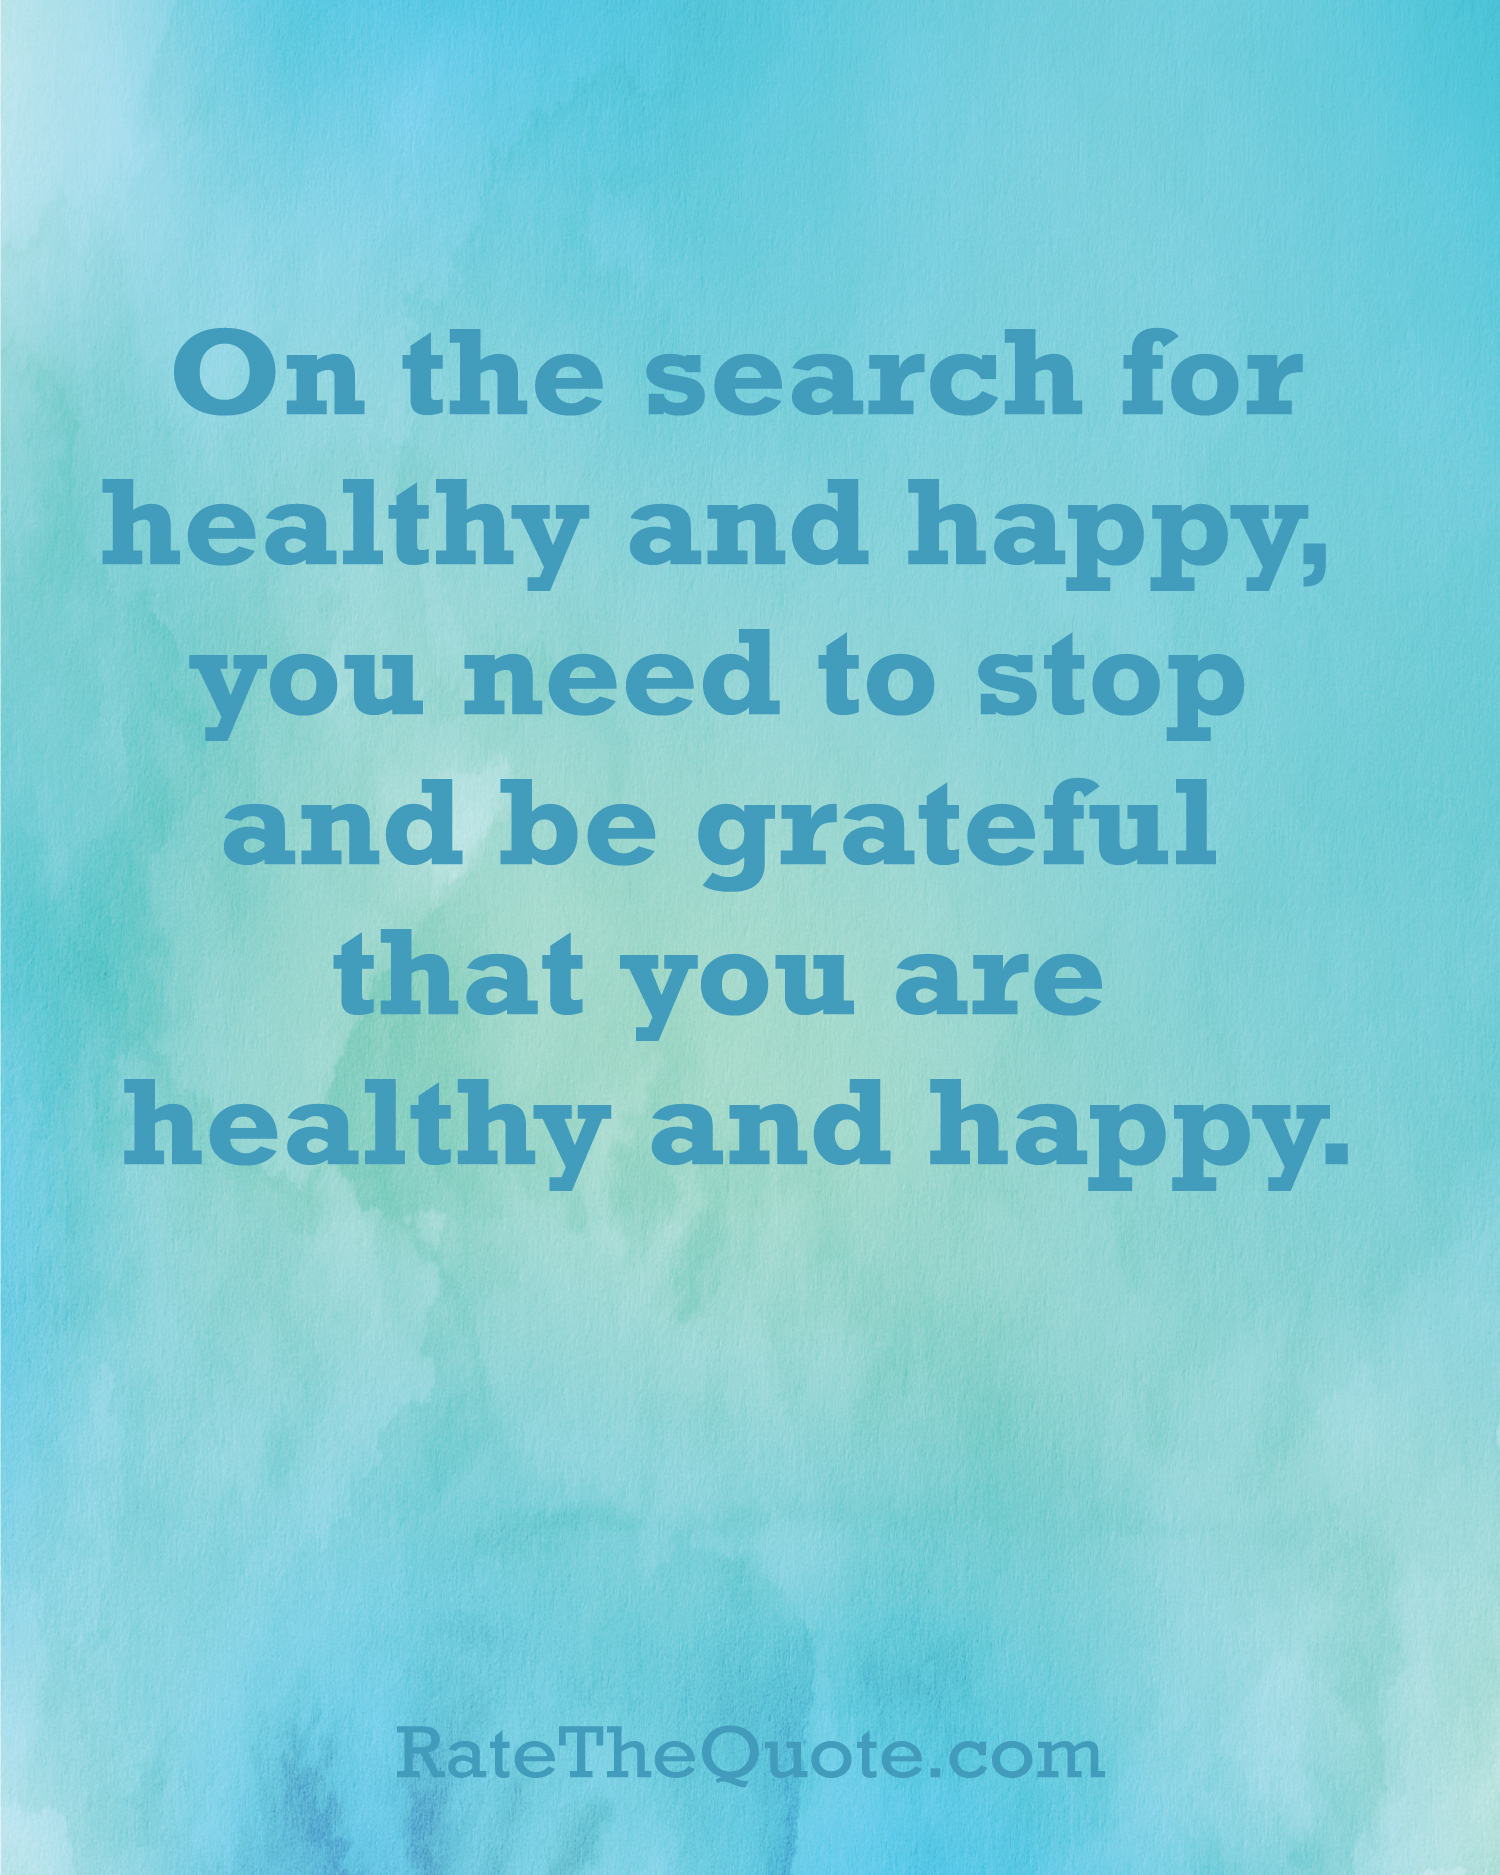 On the search for healthy and happy you need to stop and be grateful that you are healthy and happy.